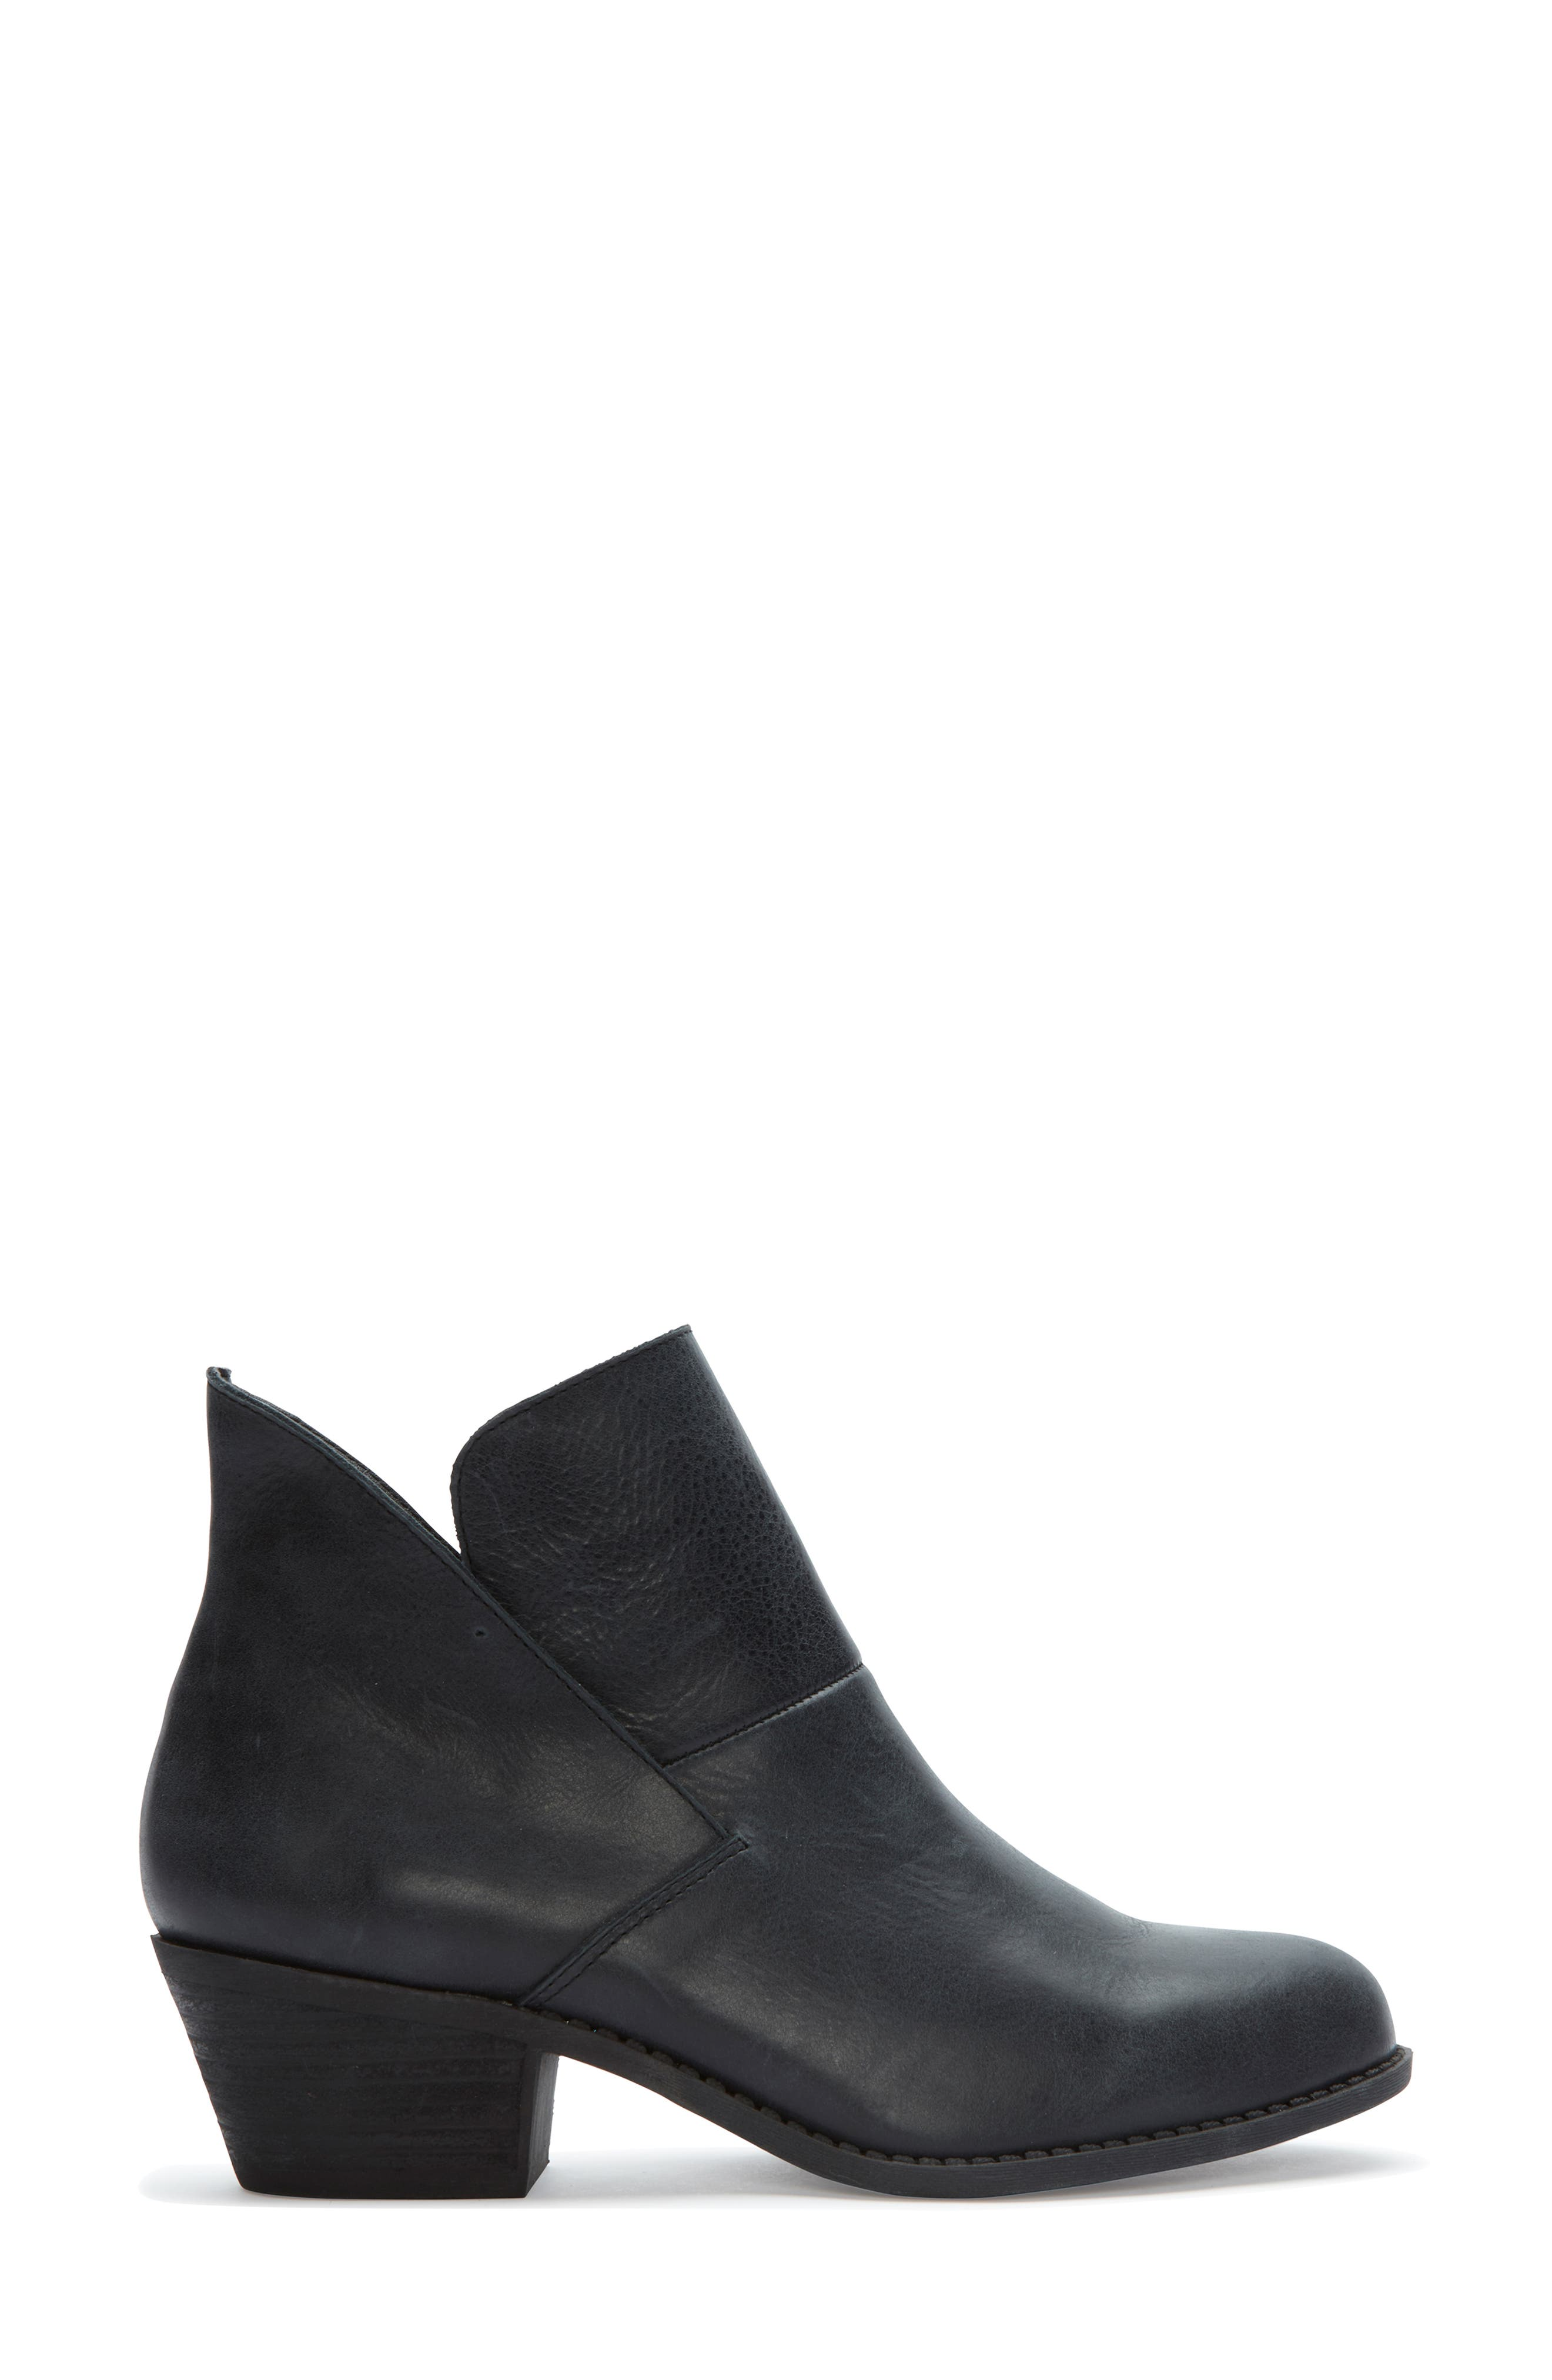 Me Too Zena Ankle Boot,                             Alternate thumbnail 3, color,                             BLACK LEATHER